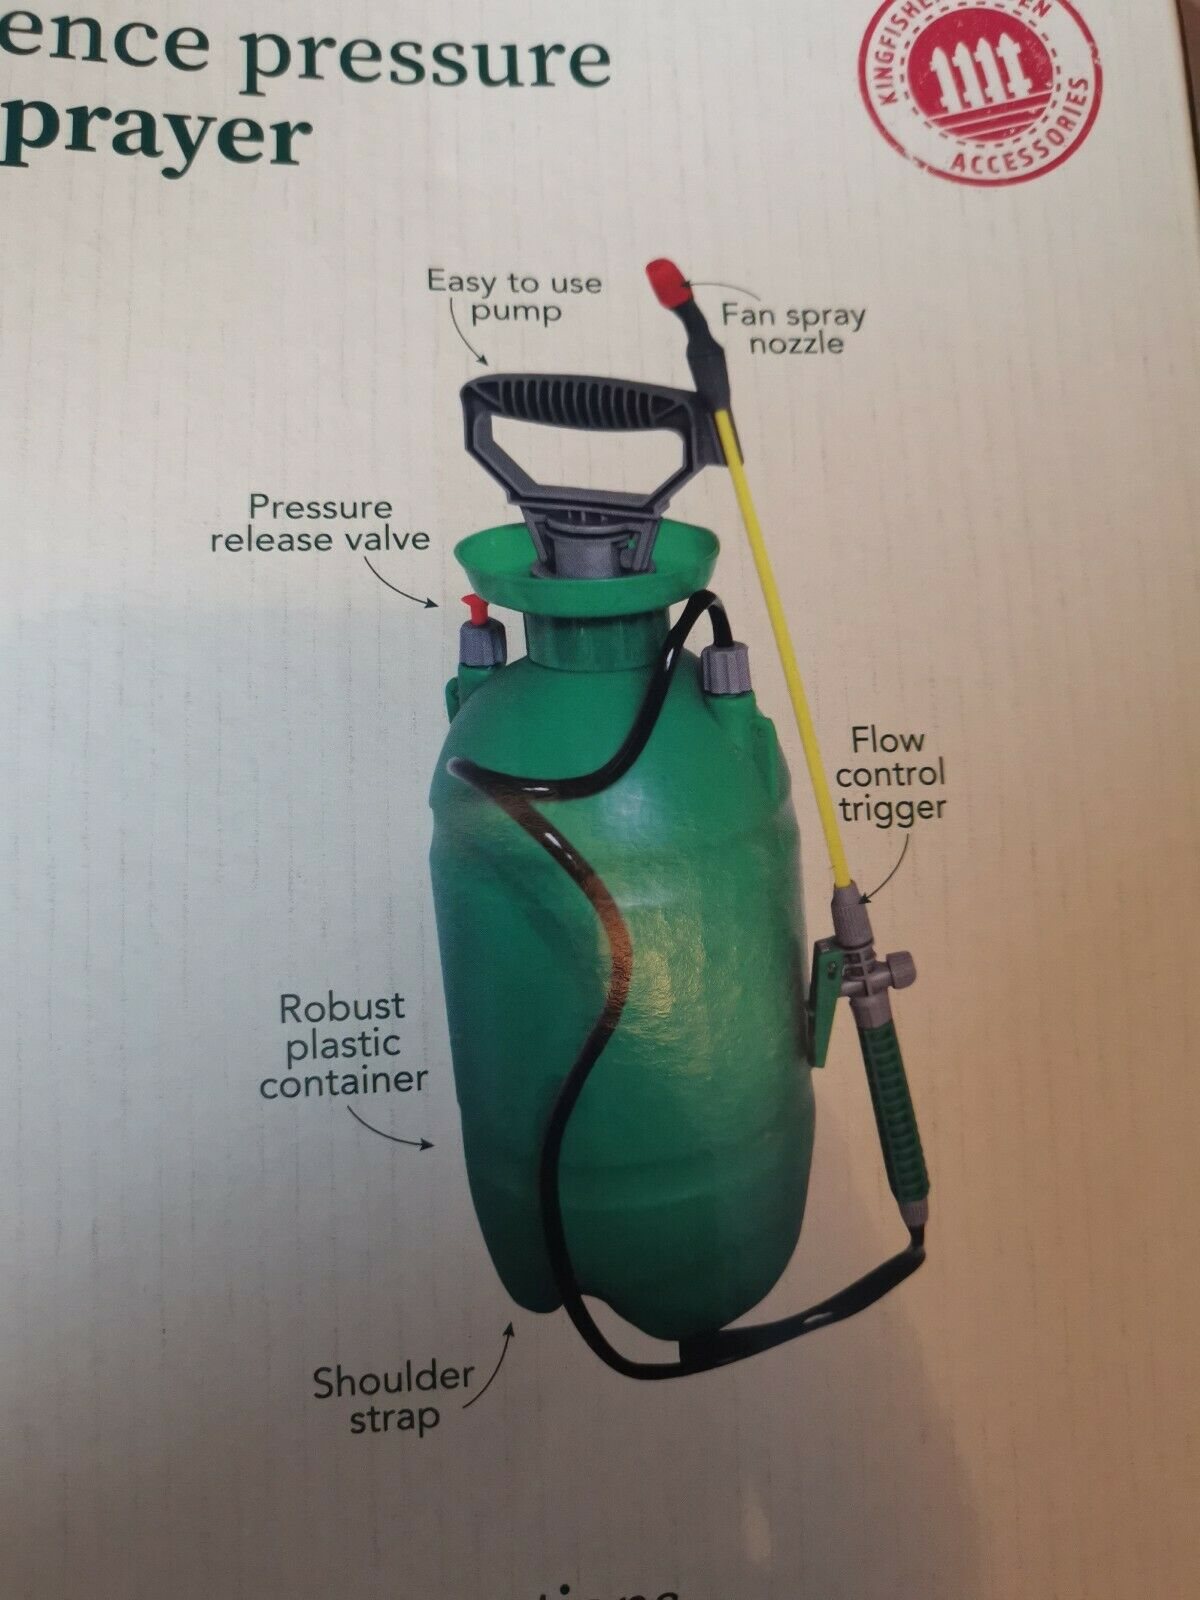 KINGFISHER garden Fence Pressure Sprayer, 5ltr, NEW, Boxed Plant Food Watering